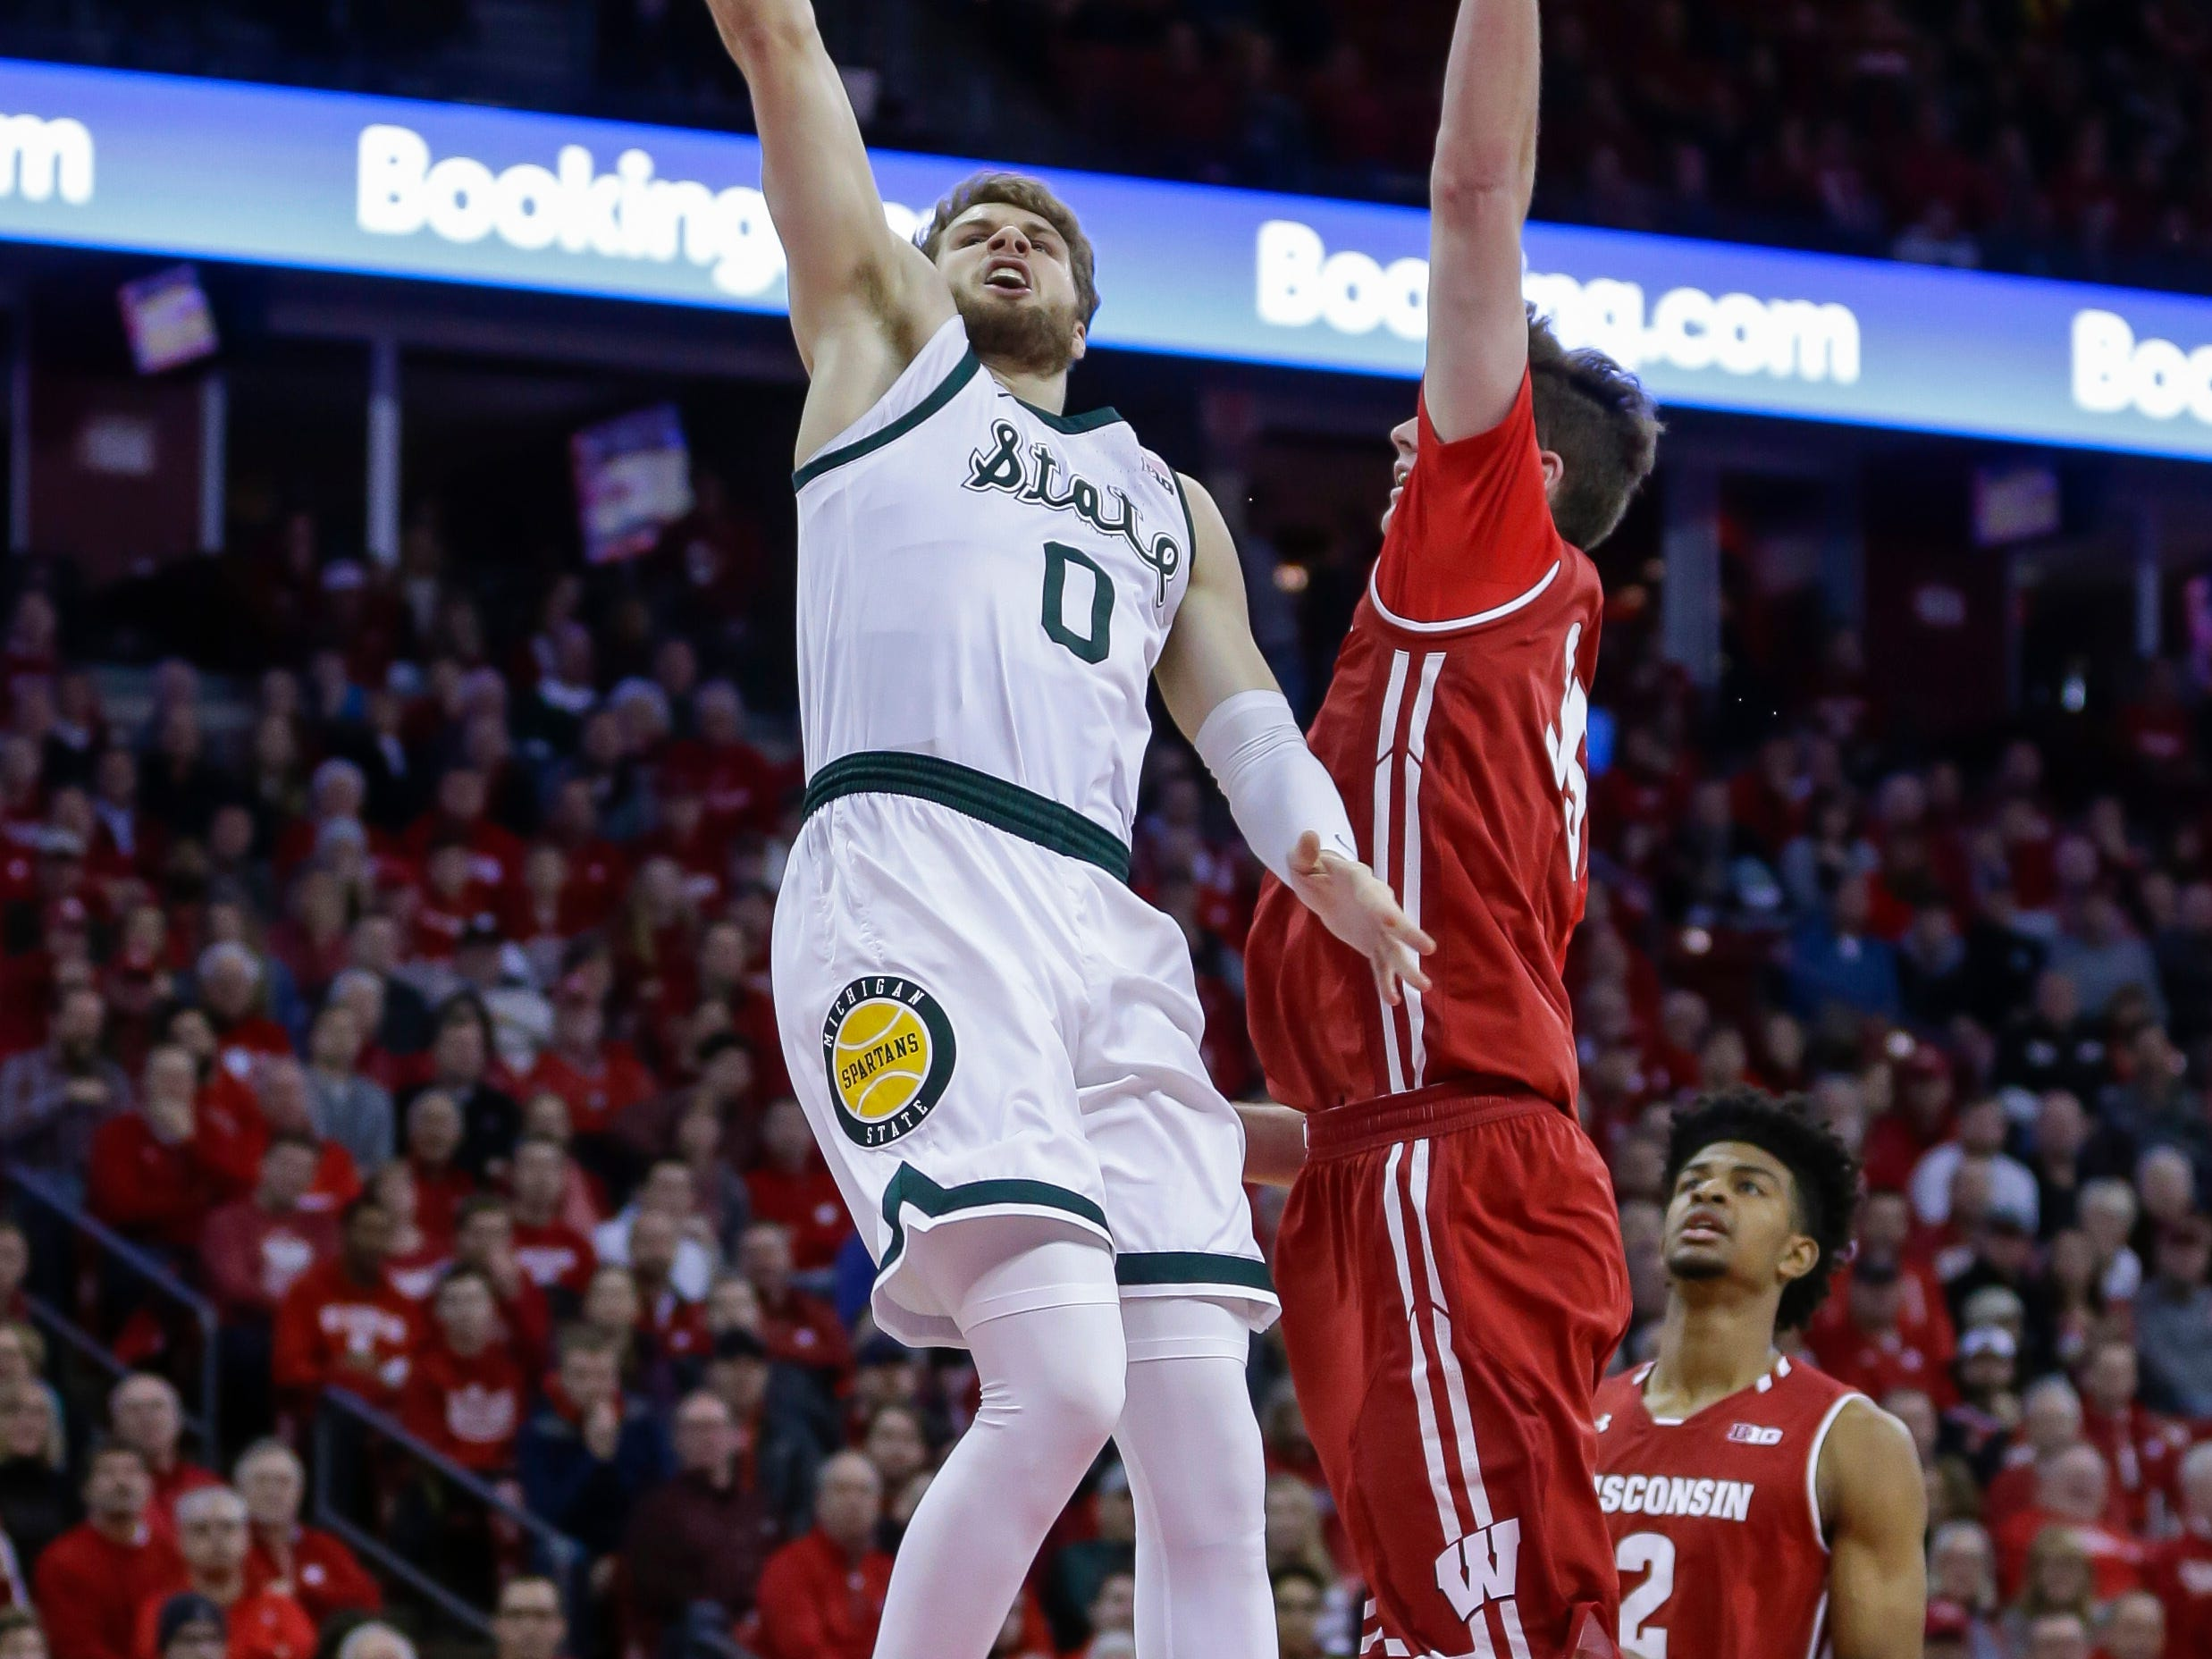 Michigan States's Kyle Ahrens (0) shoots against Wisconsin's Nate Reuvers (35) during the first half of an NCAA college basketball game Tuesday, Feb. 12, 2019, in Madison, Wis.